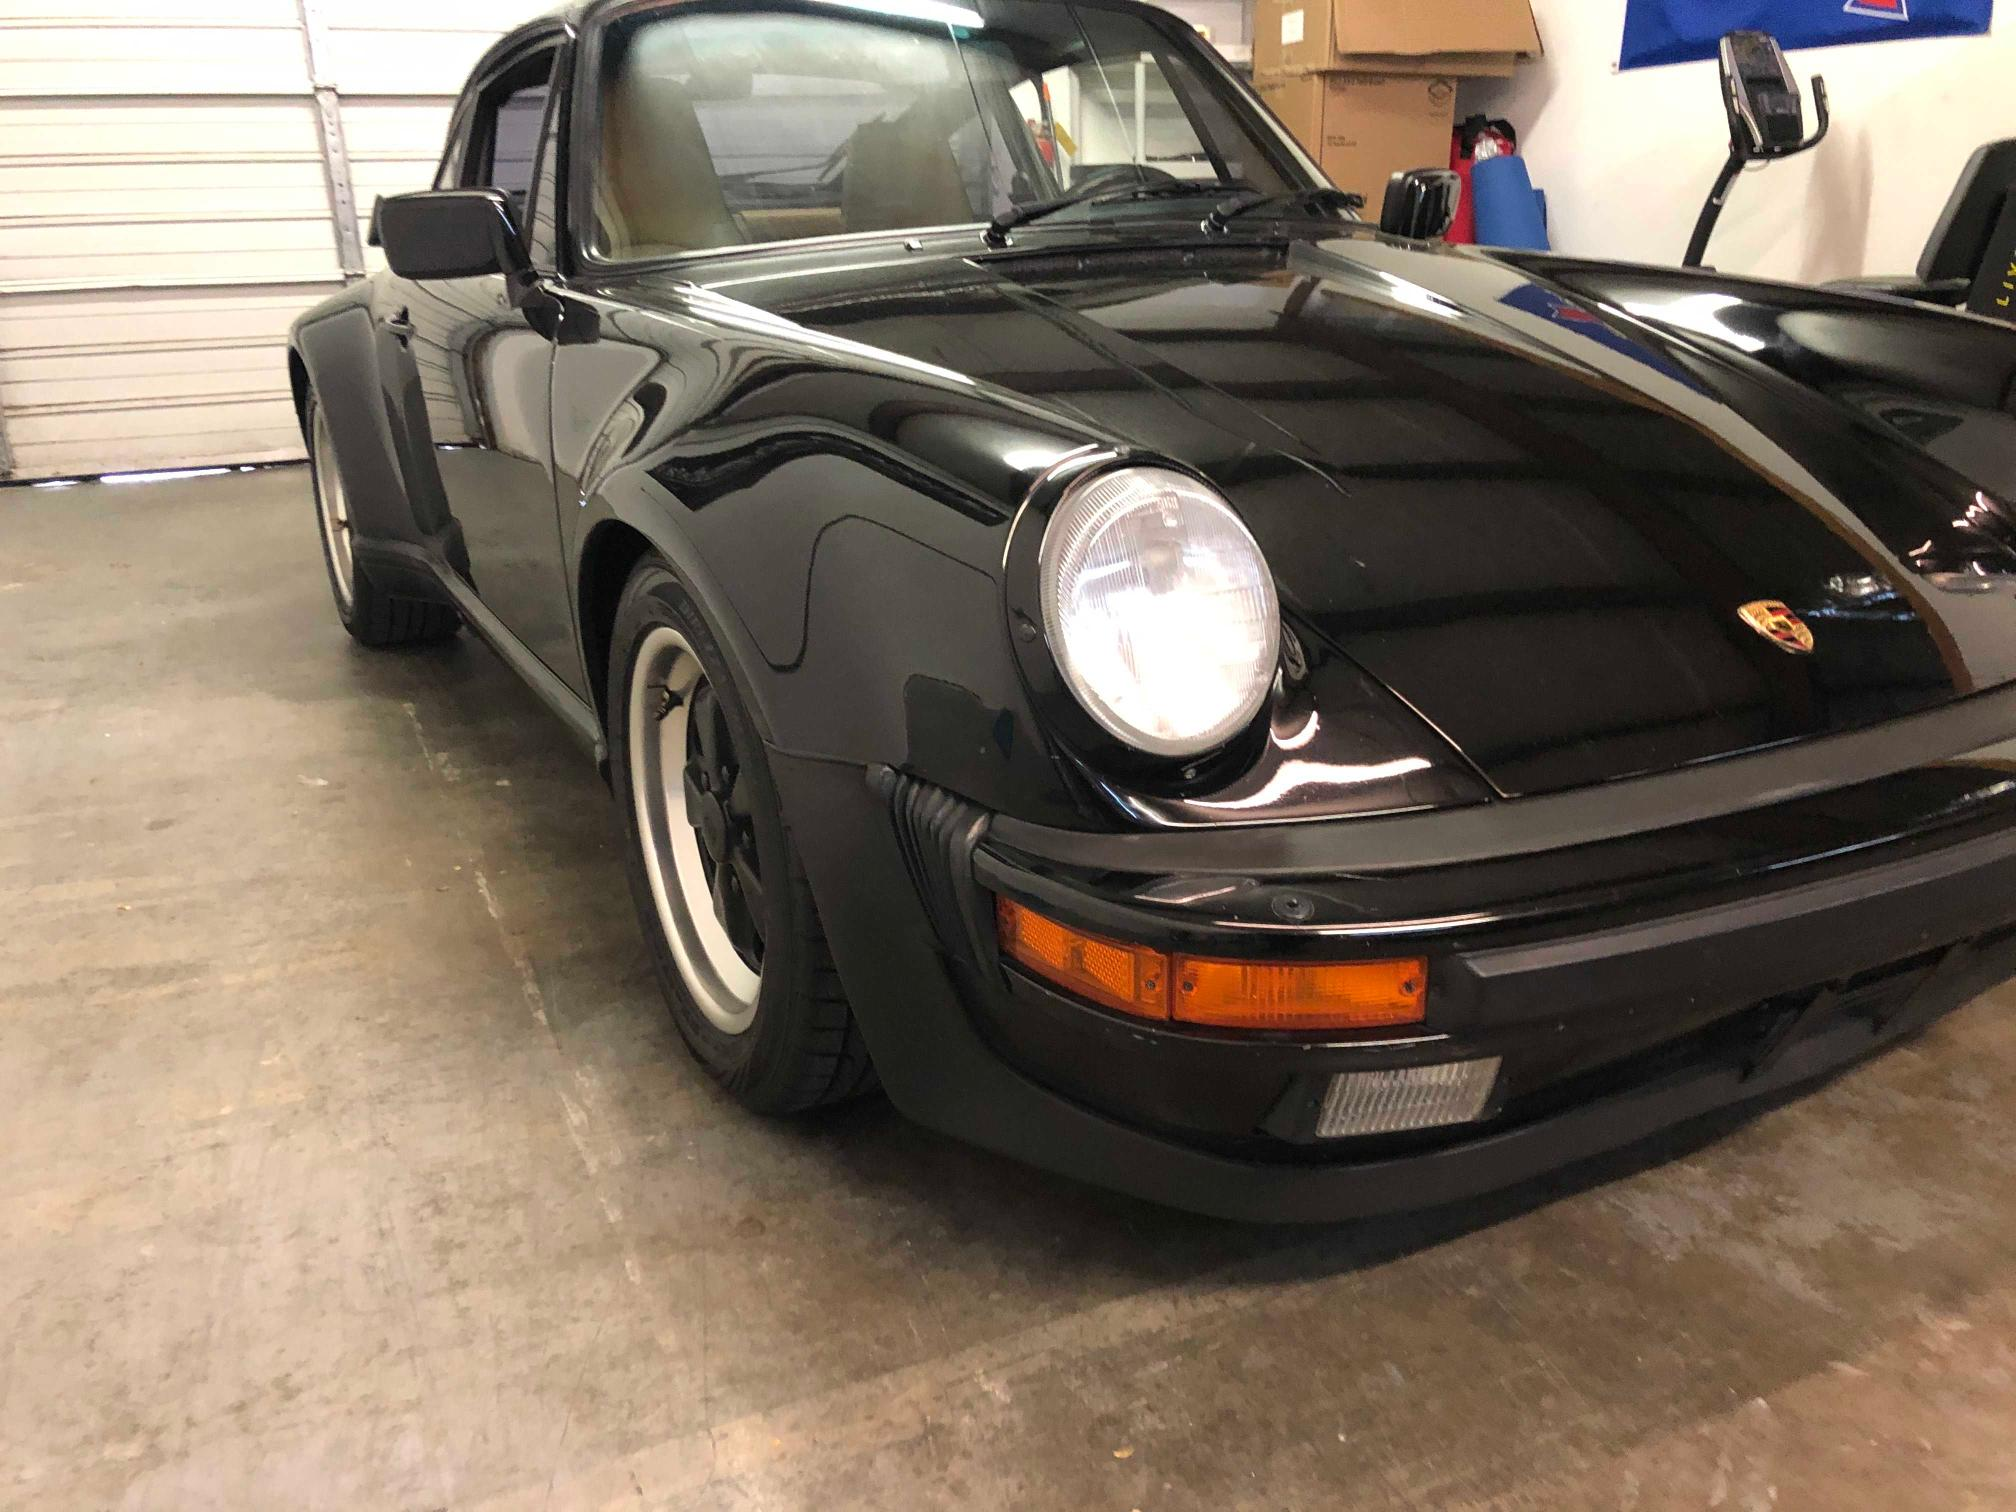 Salvage cars for sale from Copart Gainesville, GA: 1988 Porsche 911